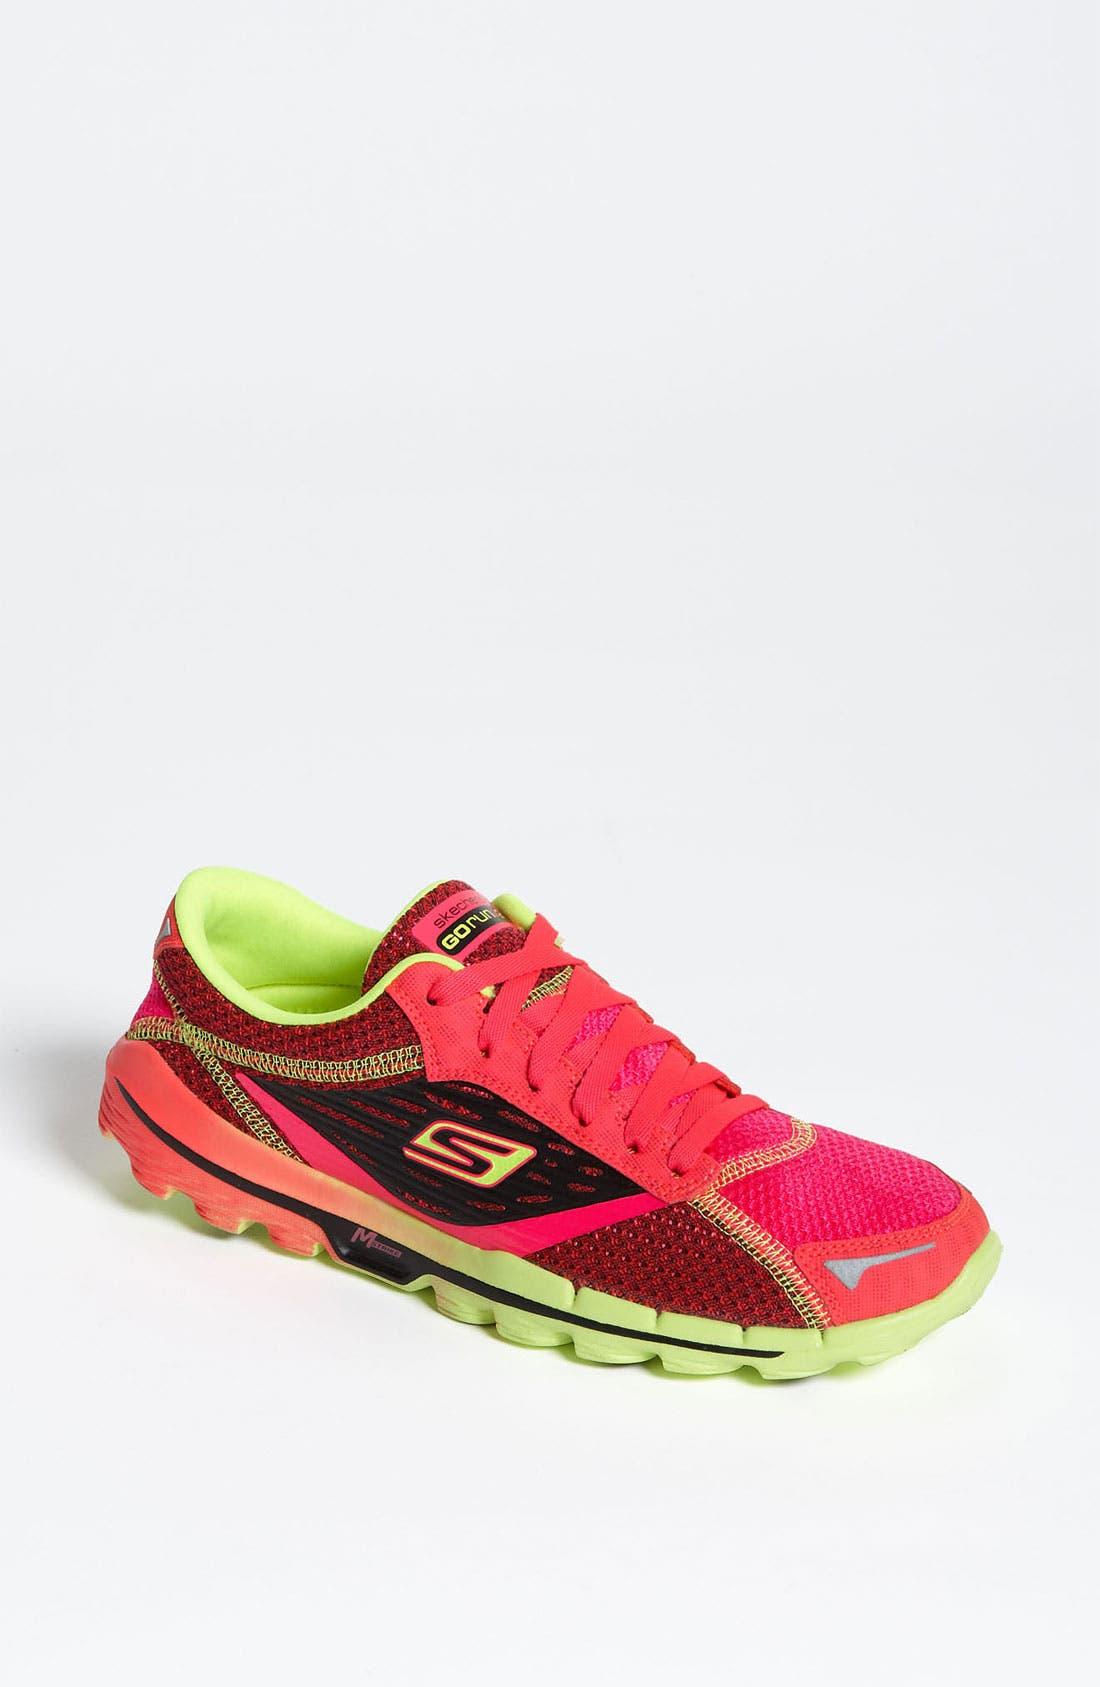 Alternate Image 1 Selected - SKECHERS 'Go Run 11' Running Shoe (Women)